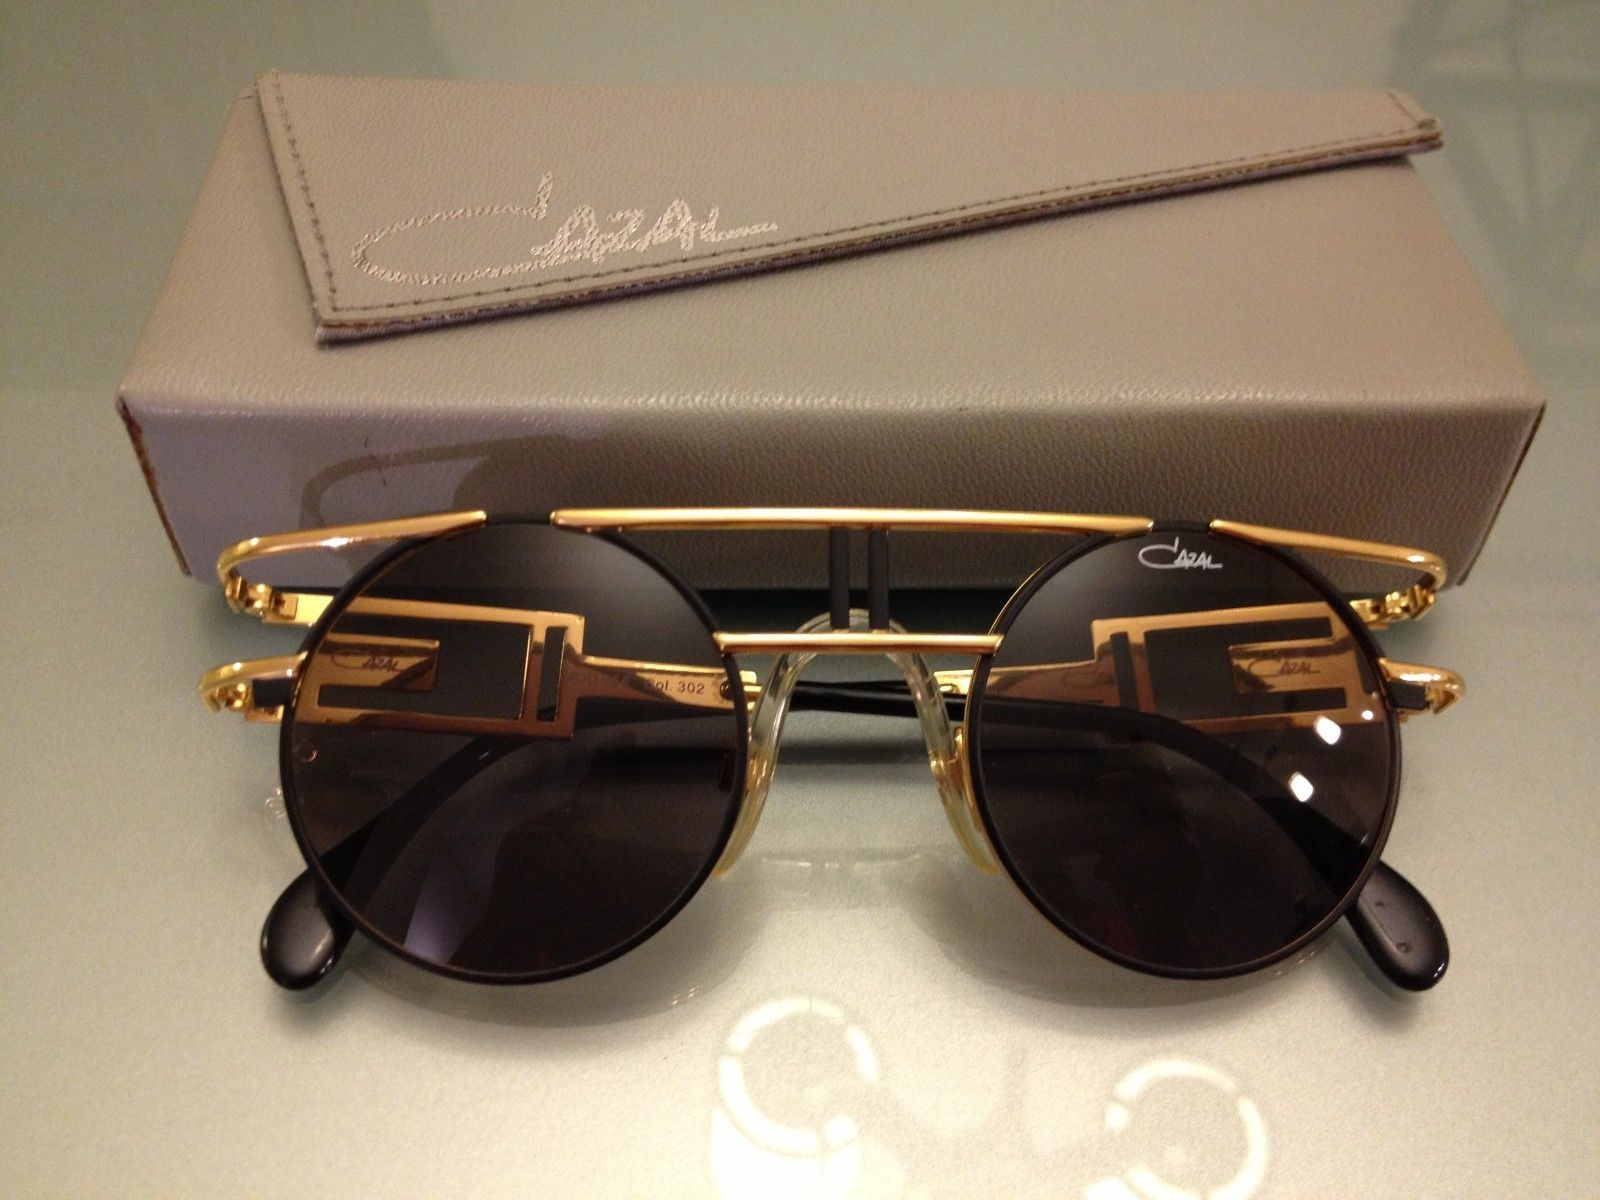 ca0d42d27f1 Rare CAZAL 958 Avant Garde Germany Sunglasses Beyonce Case Paperwork in  Clothing